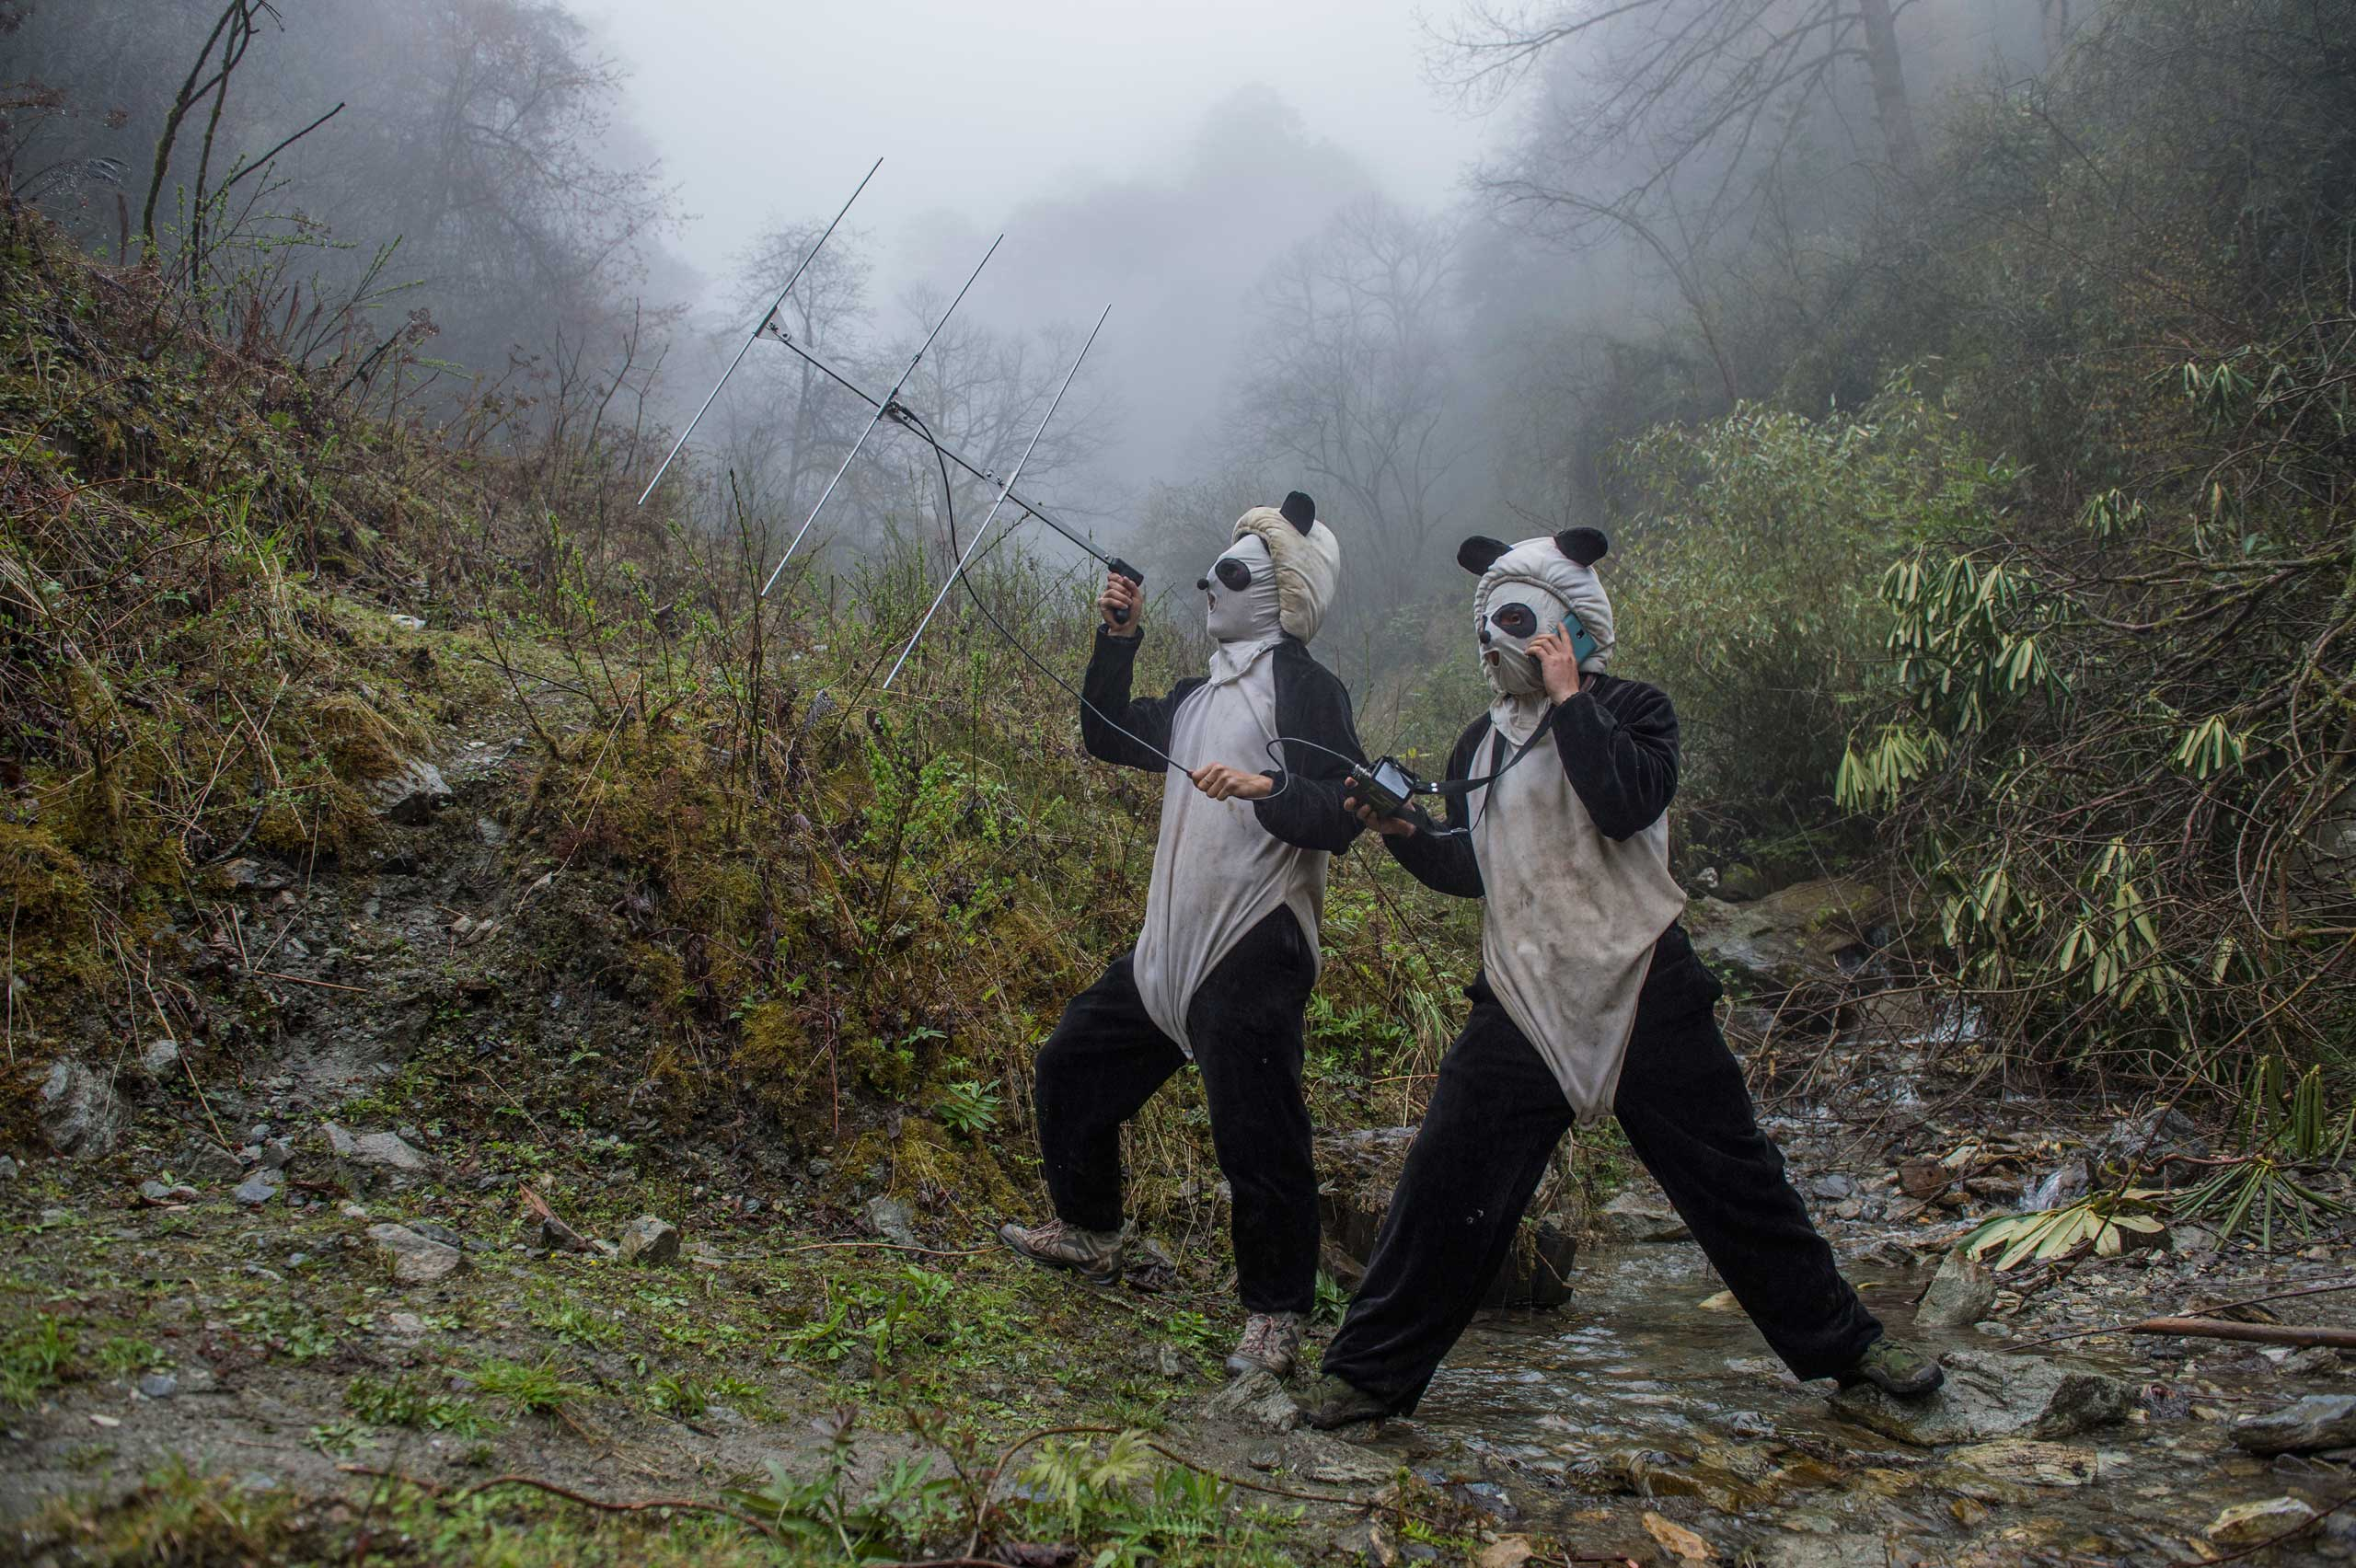 The Chinese know how to breed the popular bears. Now they're releasing them into the wild, where the animals and their habitat face risks.